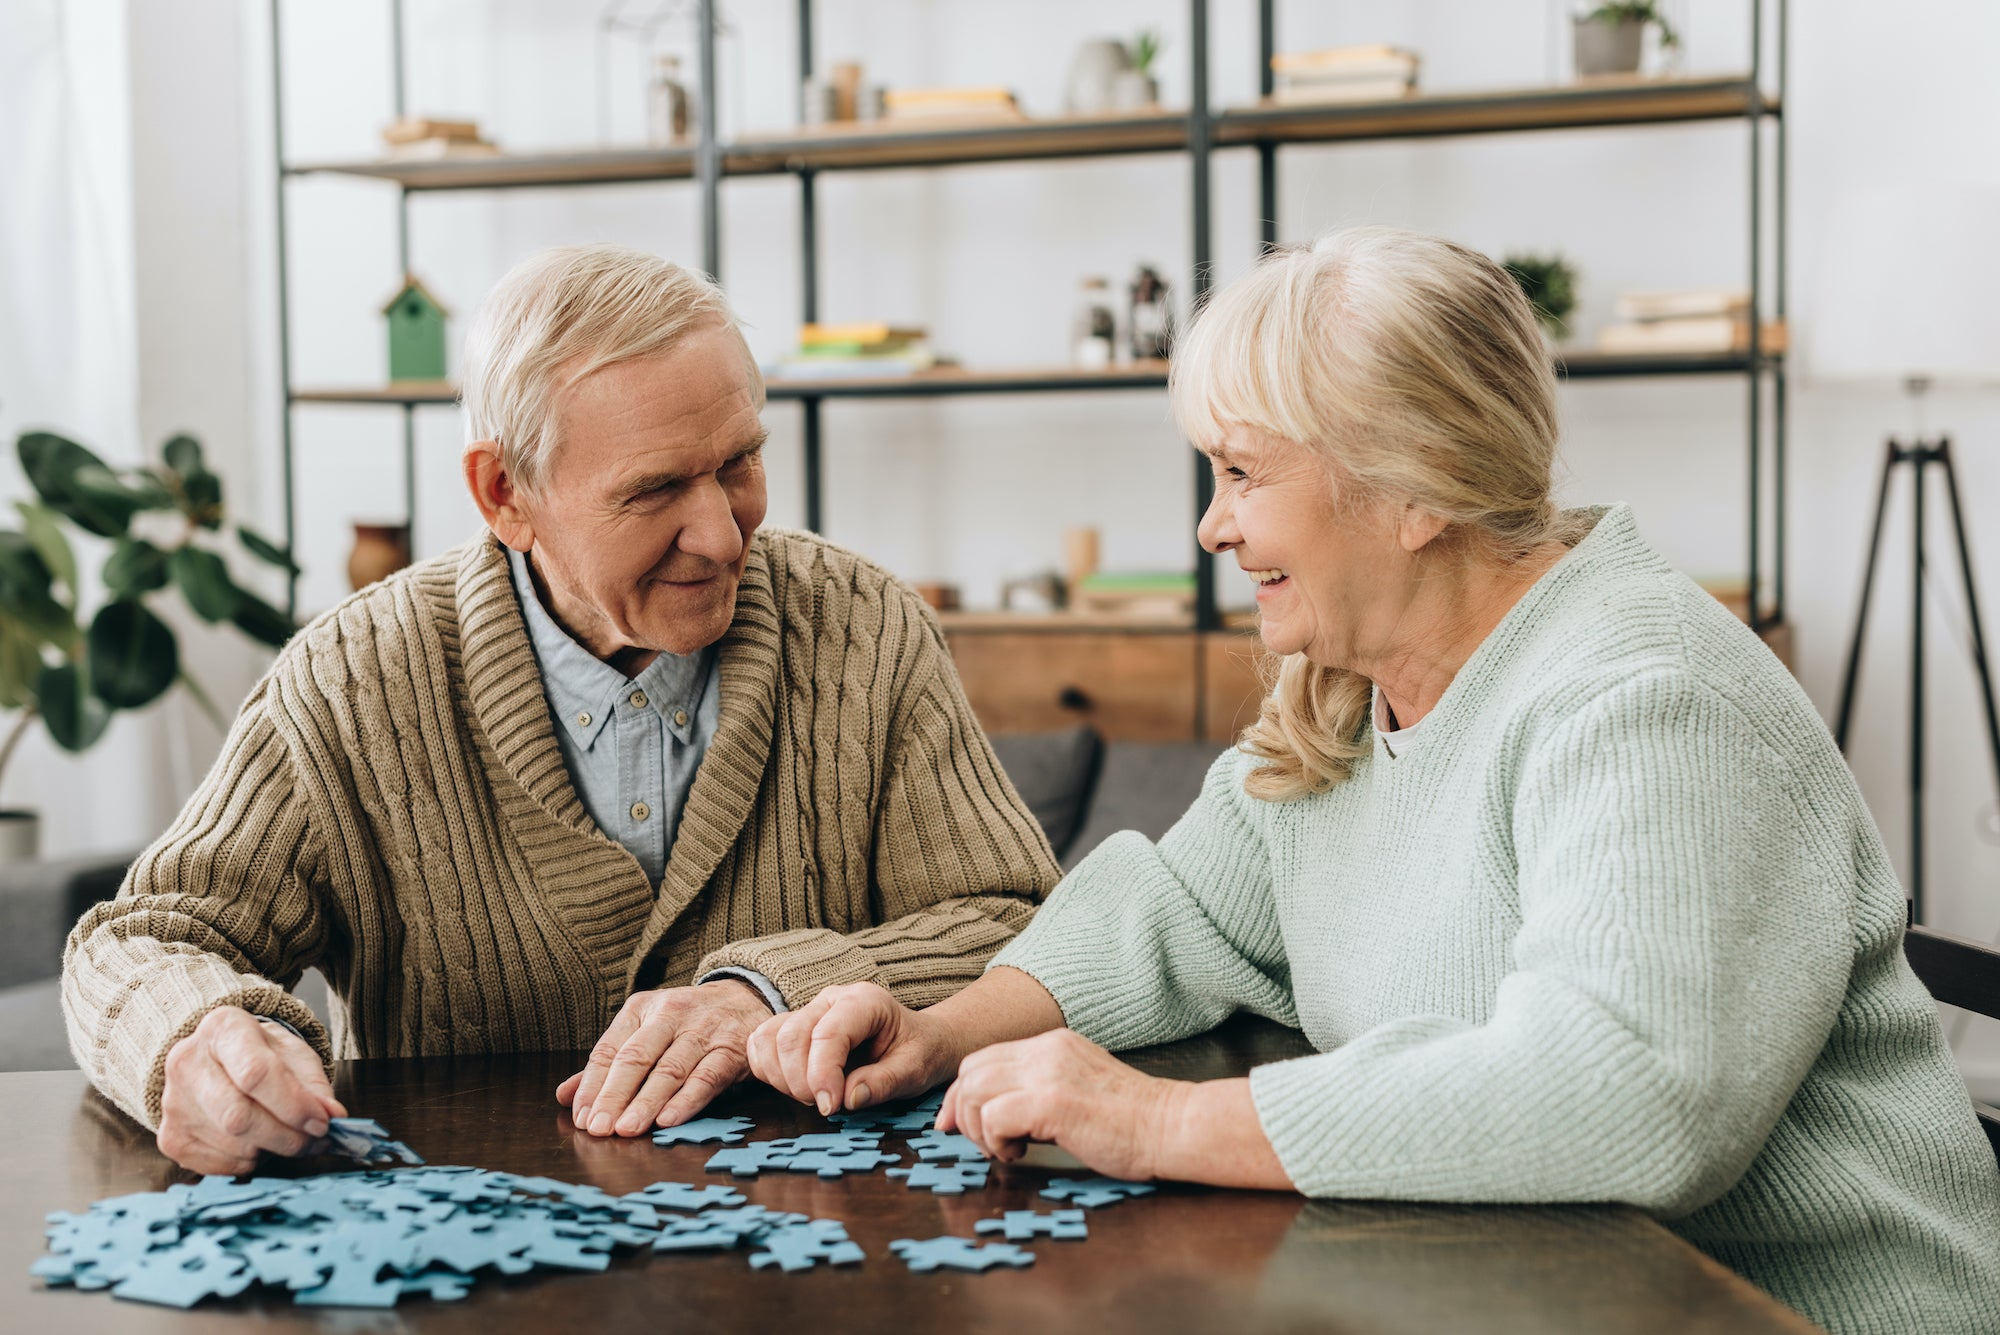 A woman helps a man complete his dementia puzzle as they sit at a brown table together